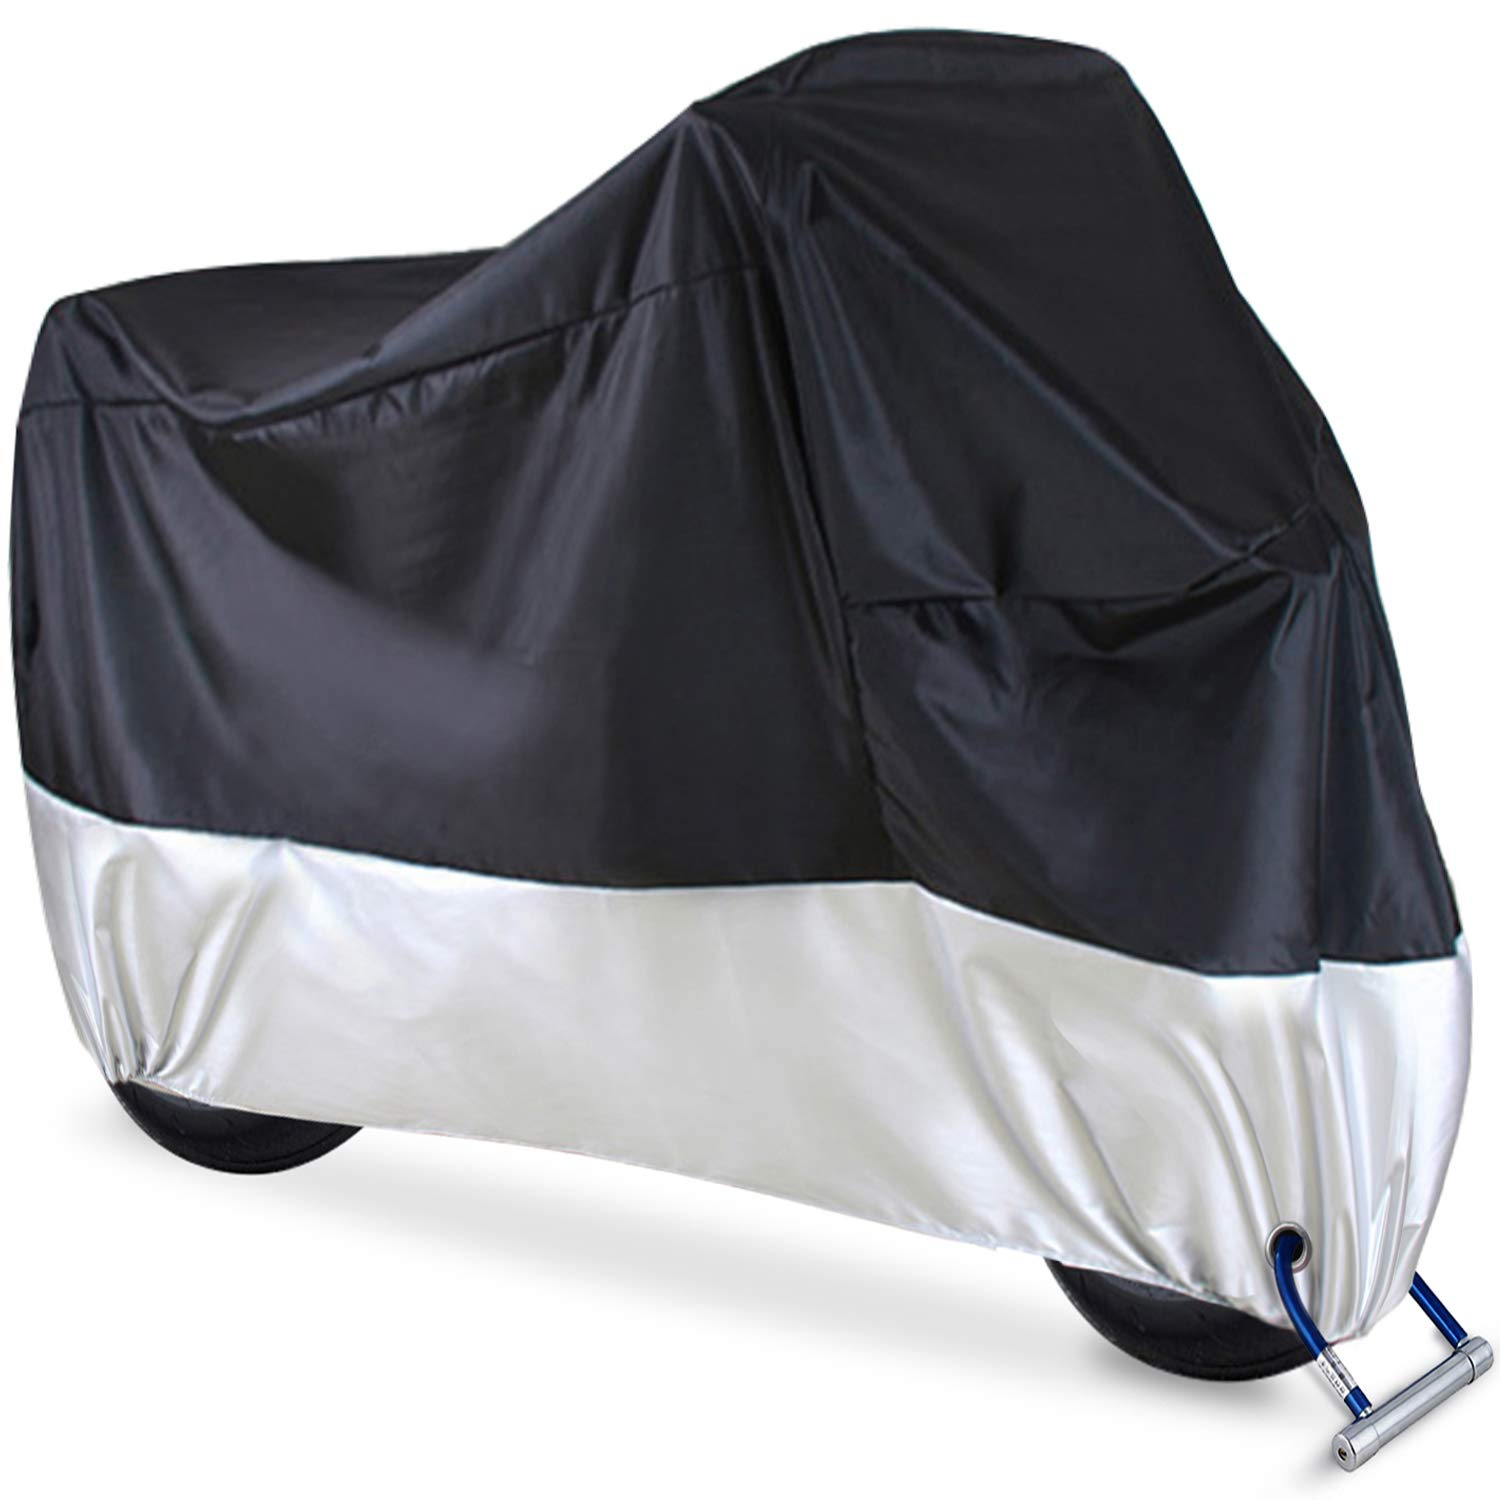 Motorcycle Cover, Ohuhu All Season Waterproof Motorbike Covers with Lock Holes, Fits up to 108'' Motors Bikes Scooters for Honda, Yamaha, Suzuki, Harley (XX Large), Black-Silver by Ohuhu